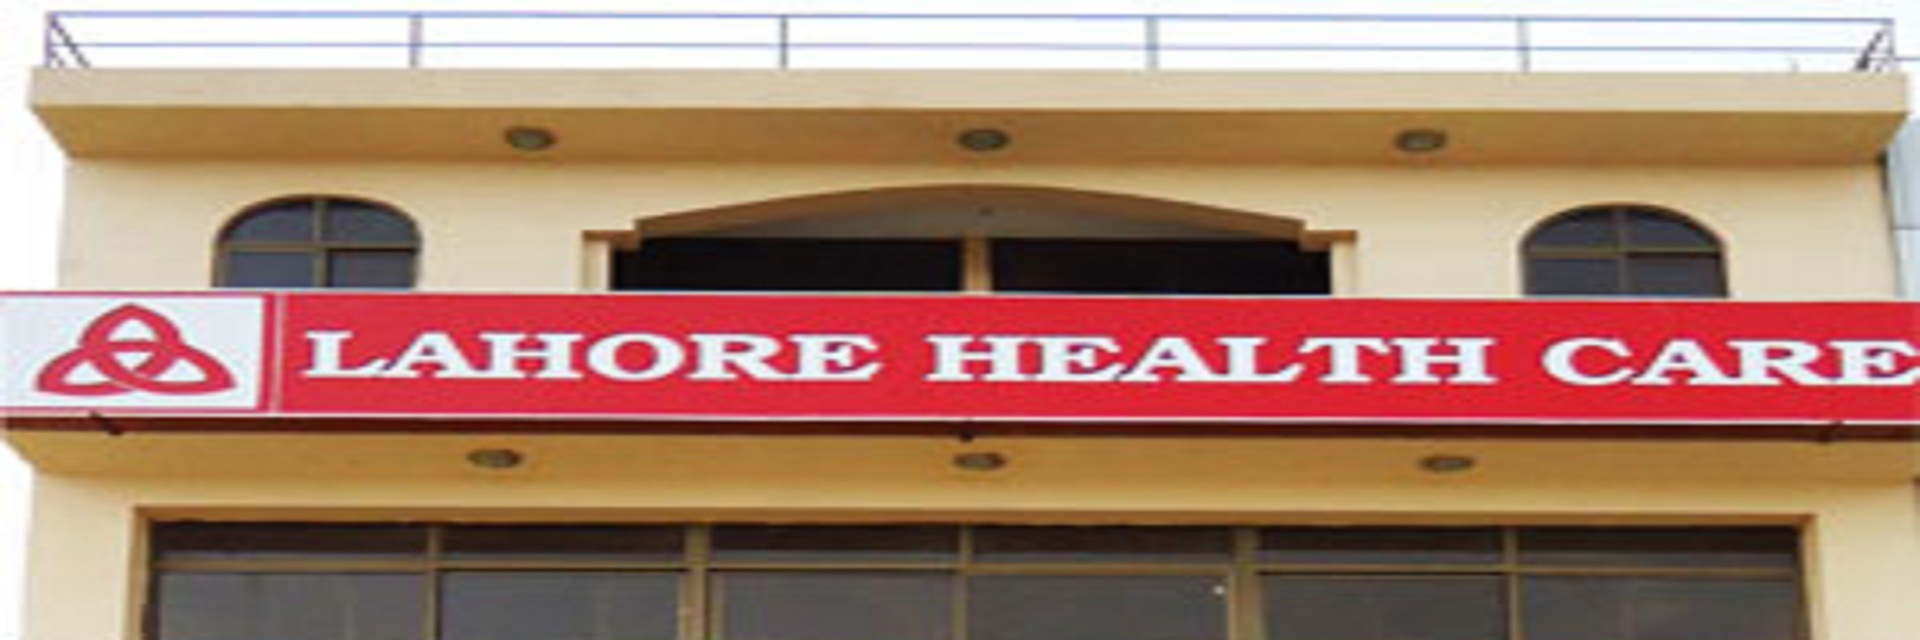 Lahore health care front